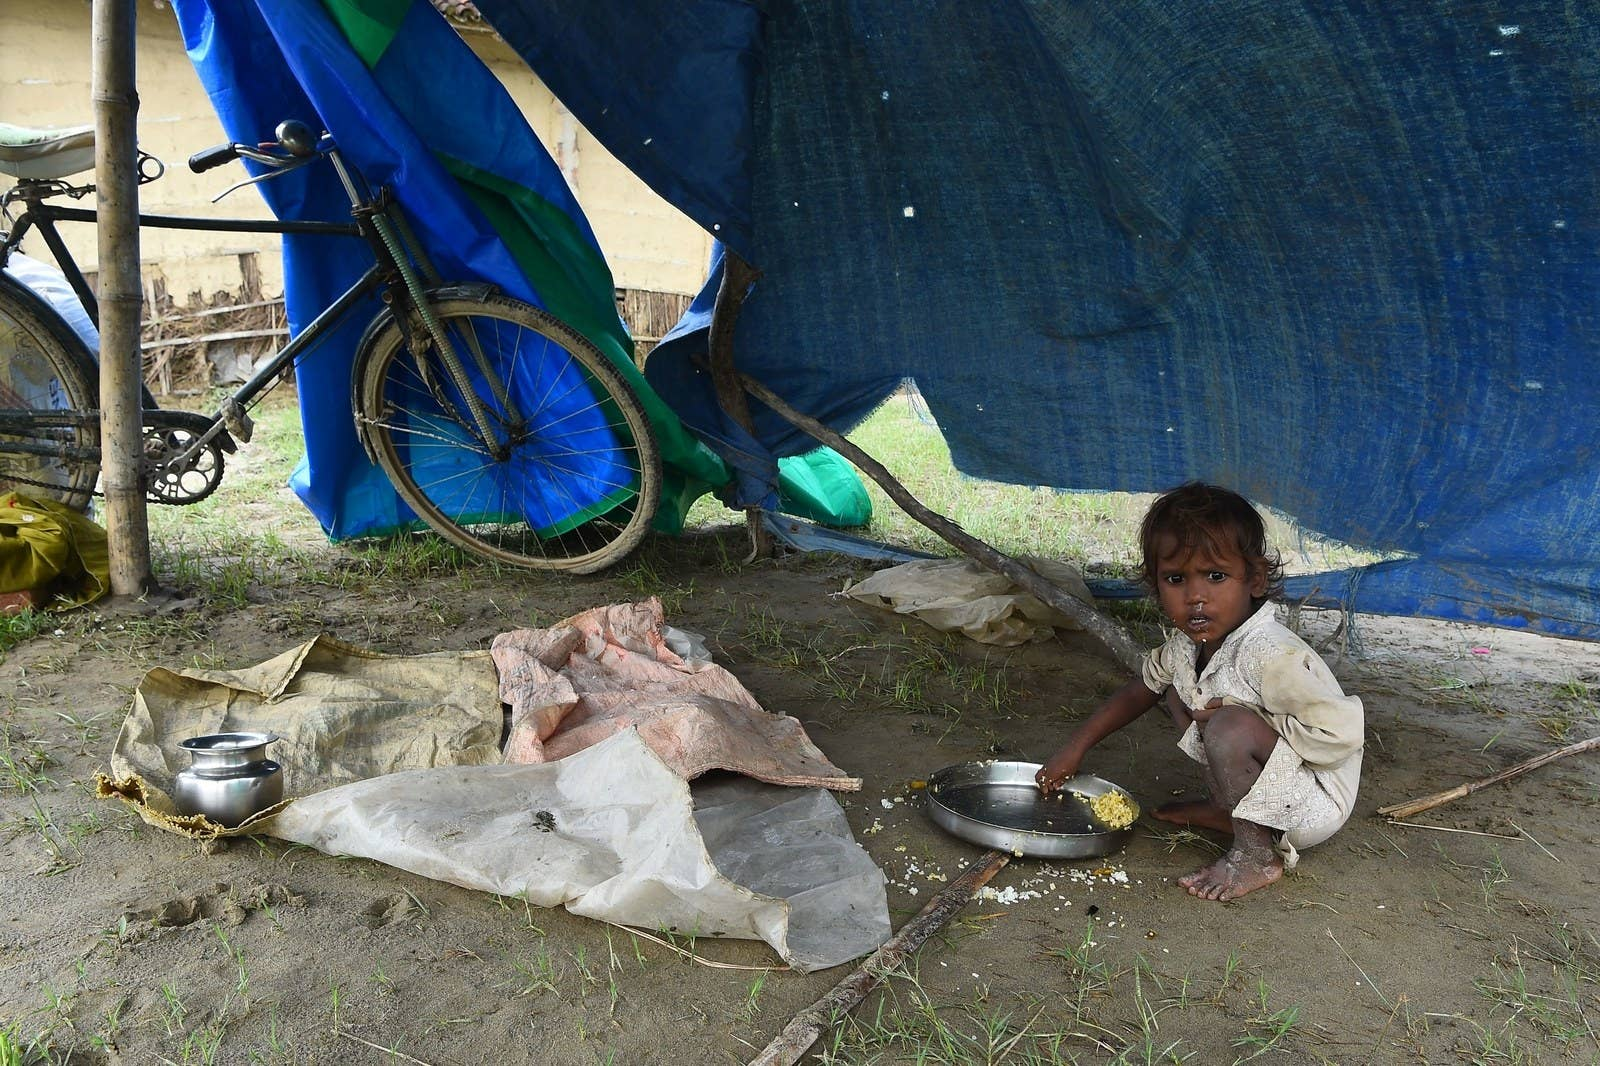 A child eats at a makeshift flood shelter in Gaur, about 200 km south of Kathmandu, the Nepali capital.